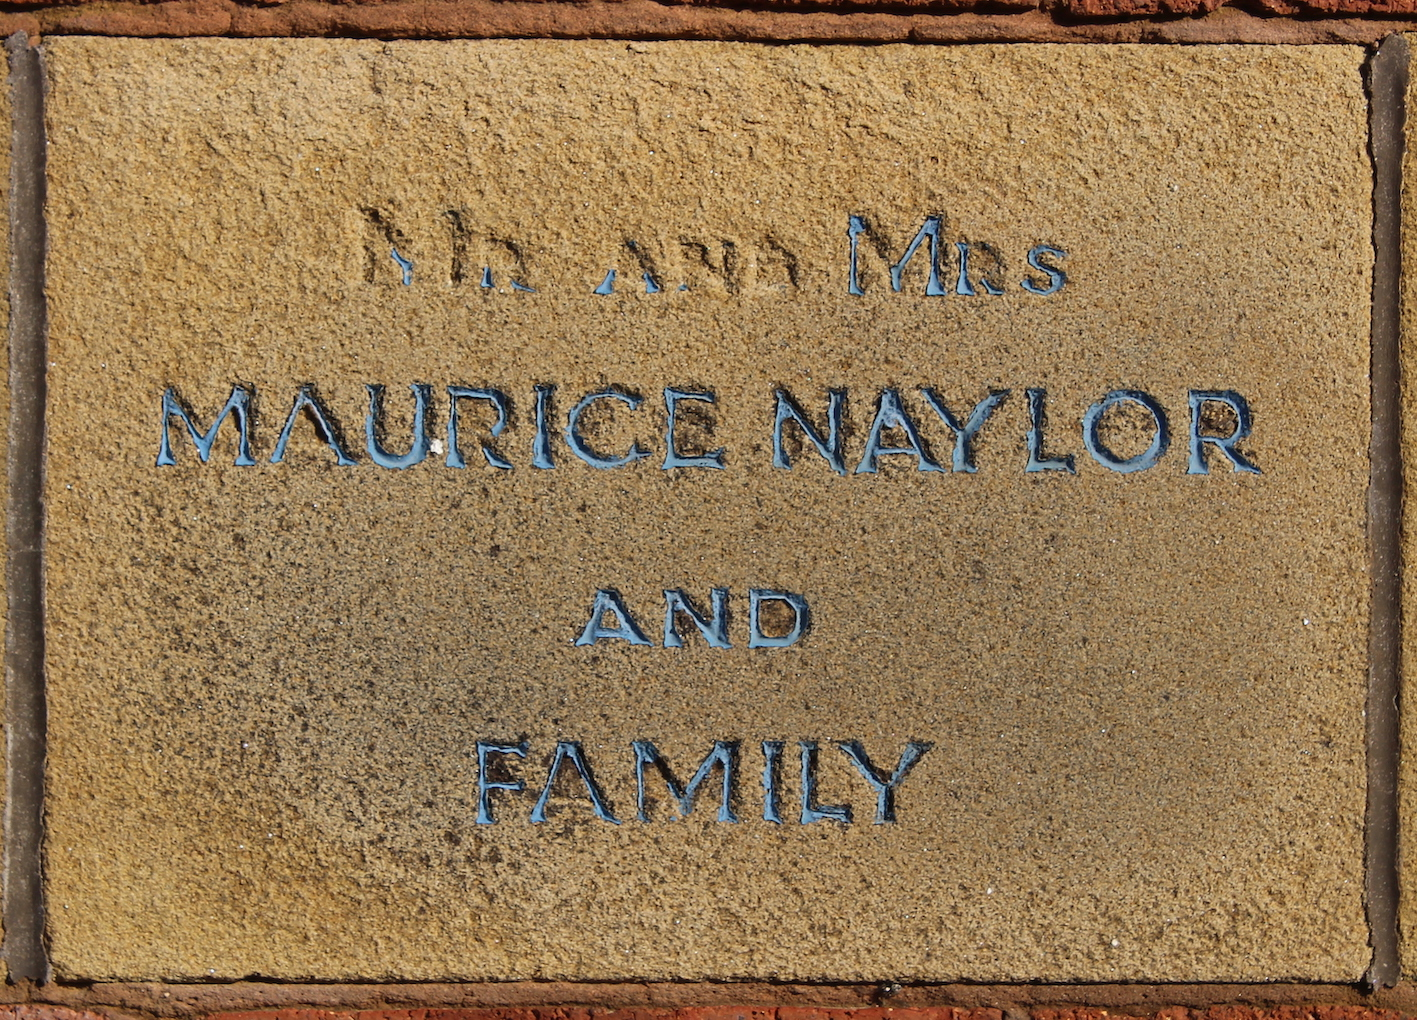 Memorial stone for Mr and Mrs Maurice Naylor